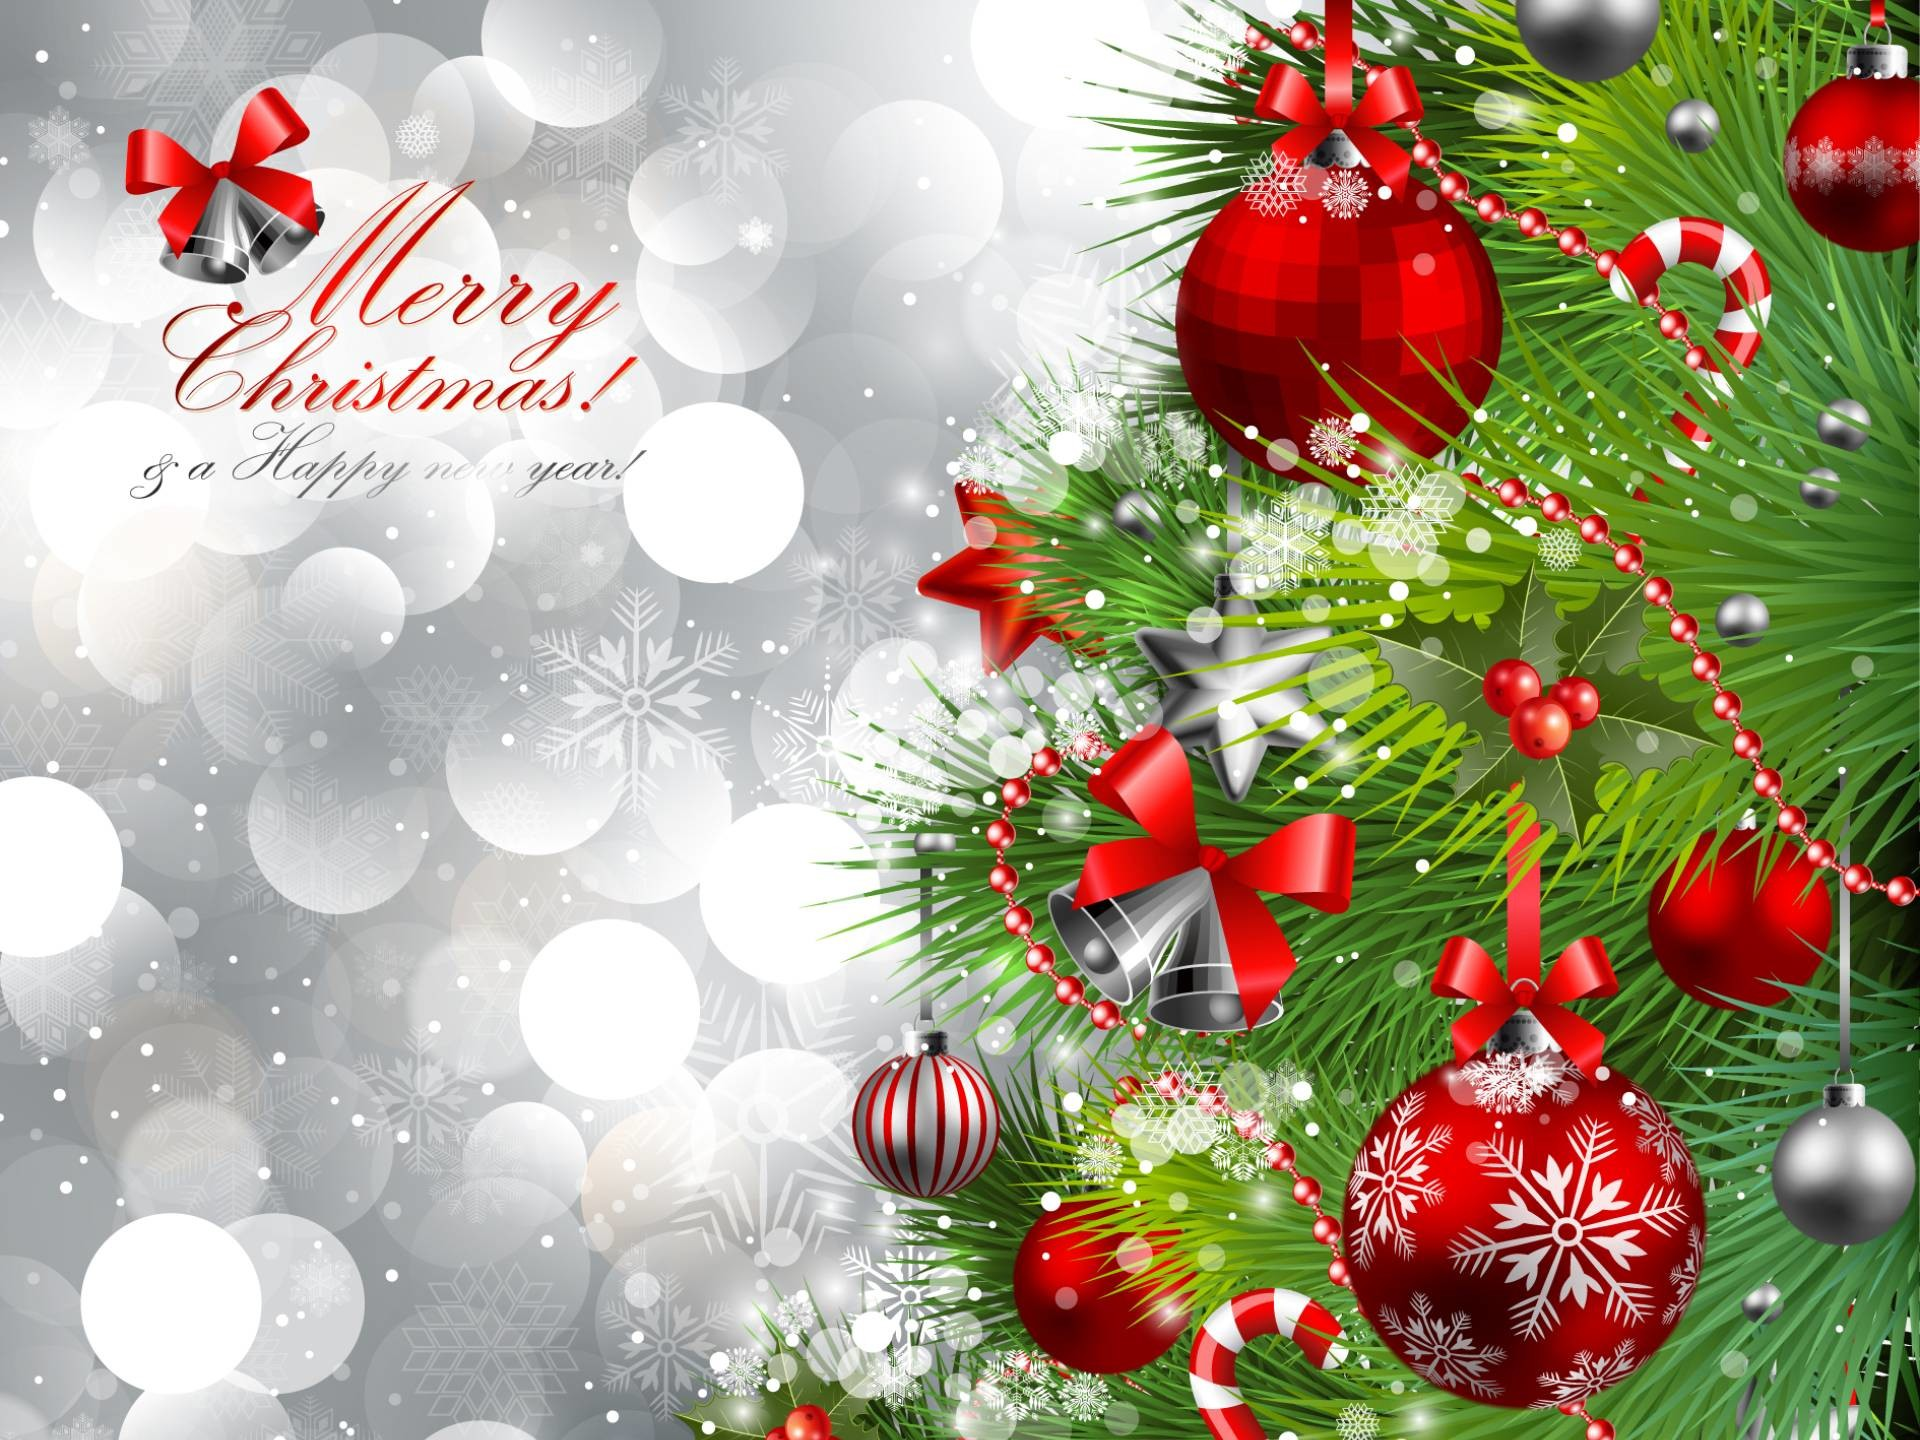 Res: 1920x1440, Merry Xmas Wallpapers High Quality Resolution